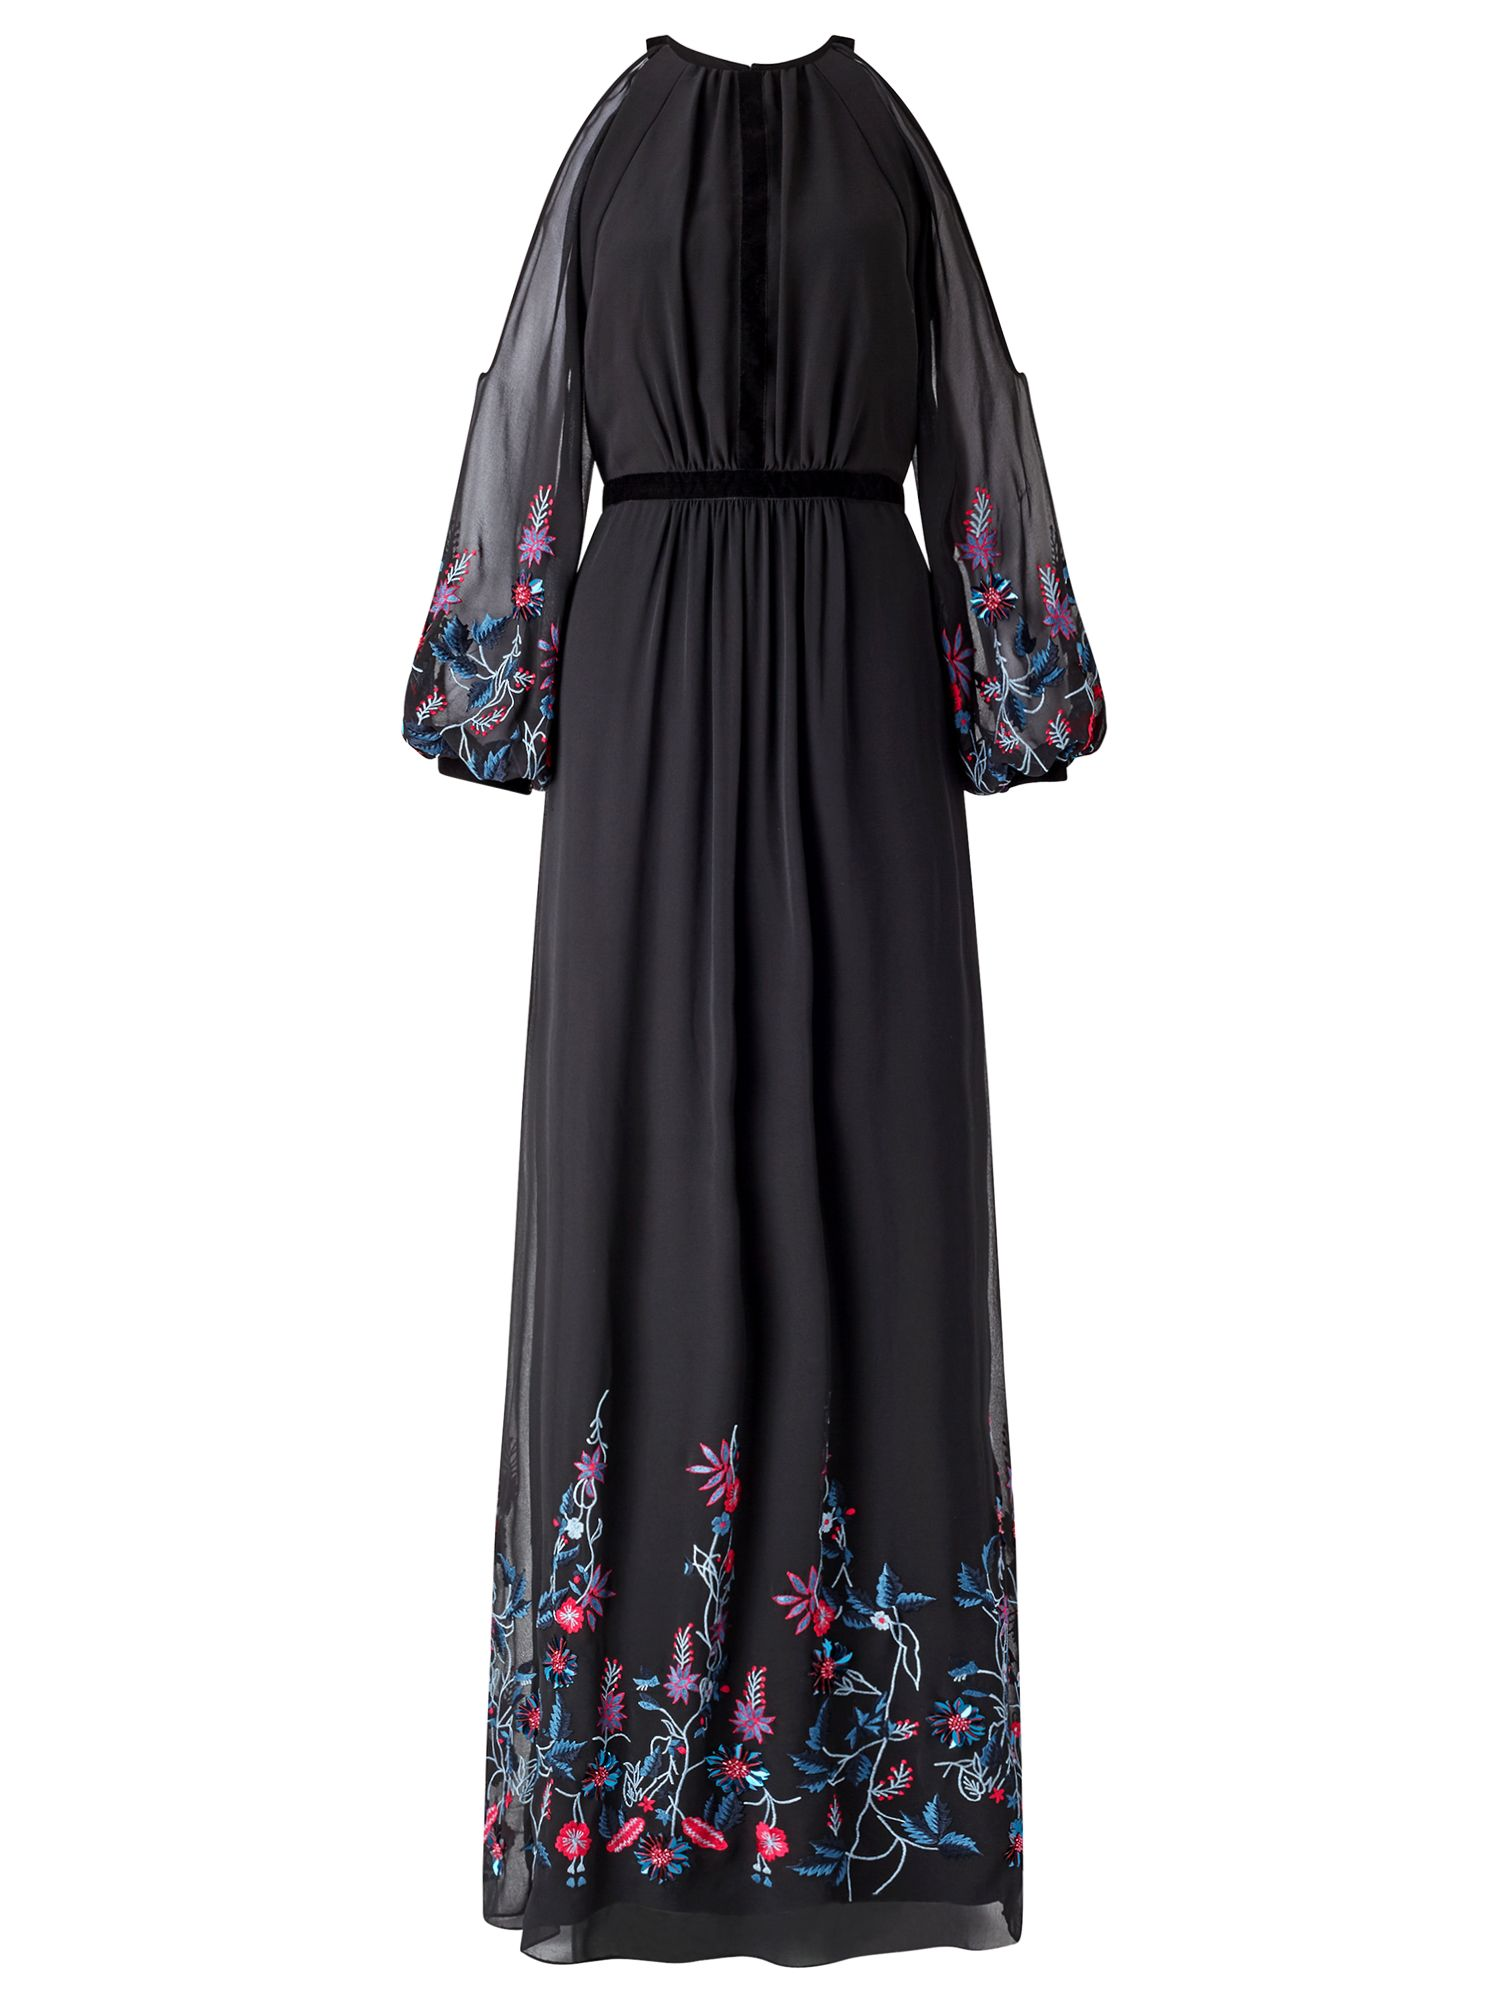 Ariella Sheba Embroiderey Dress, Black